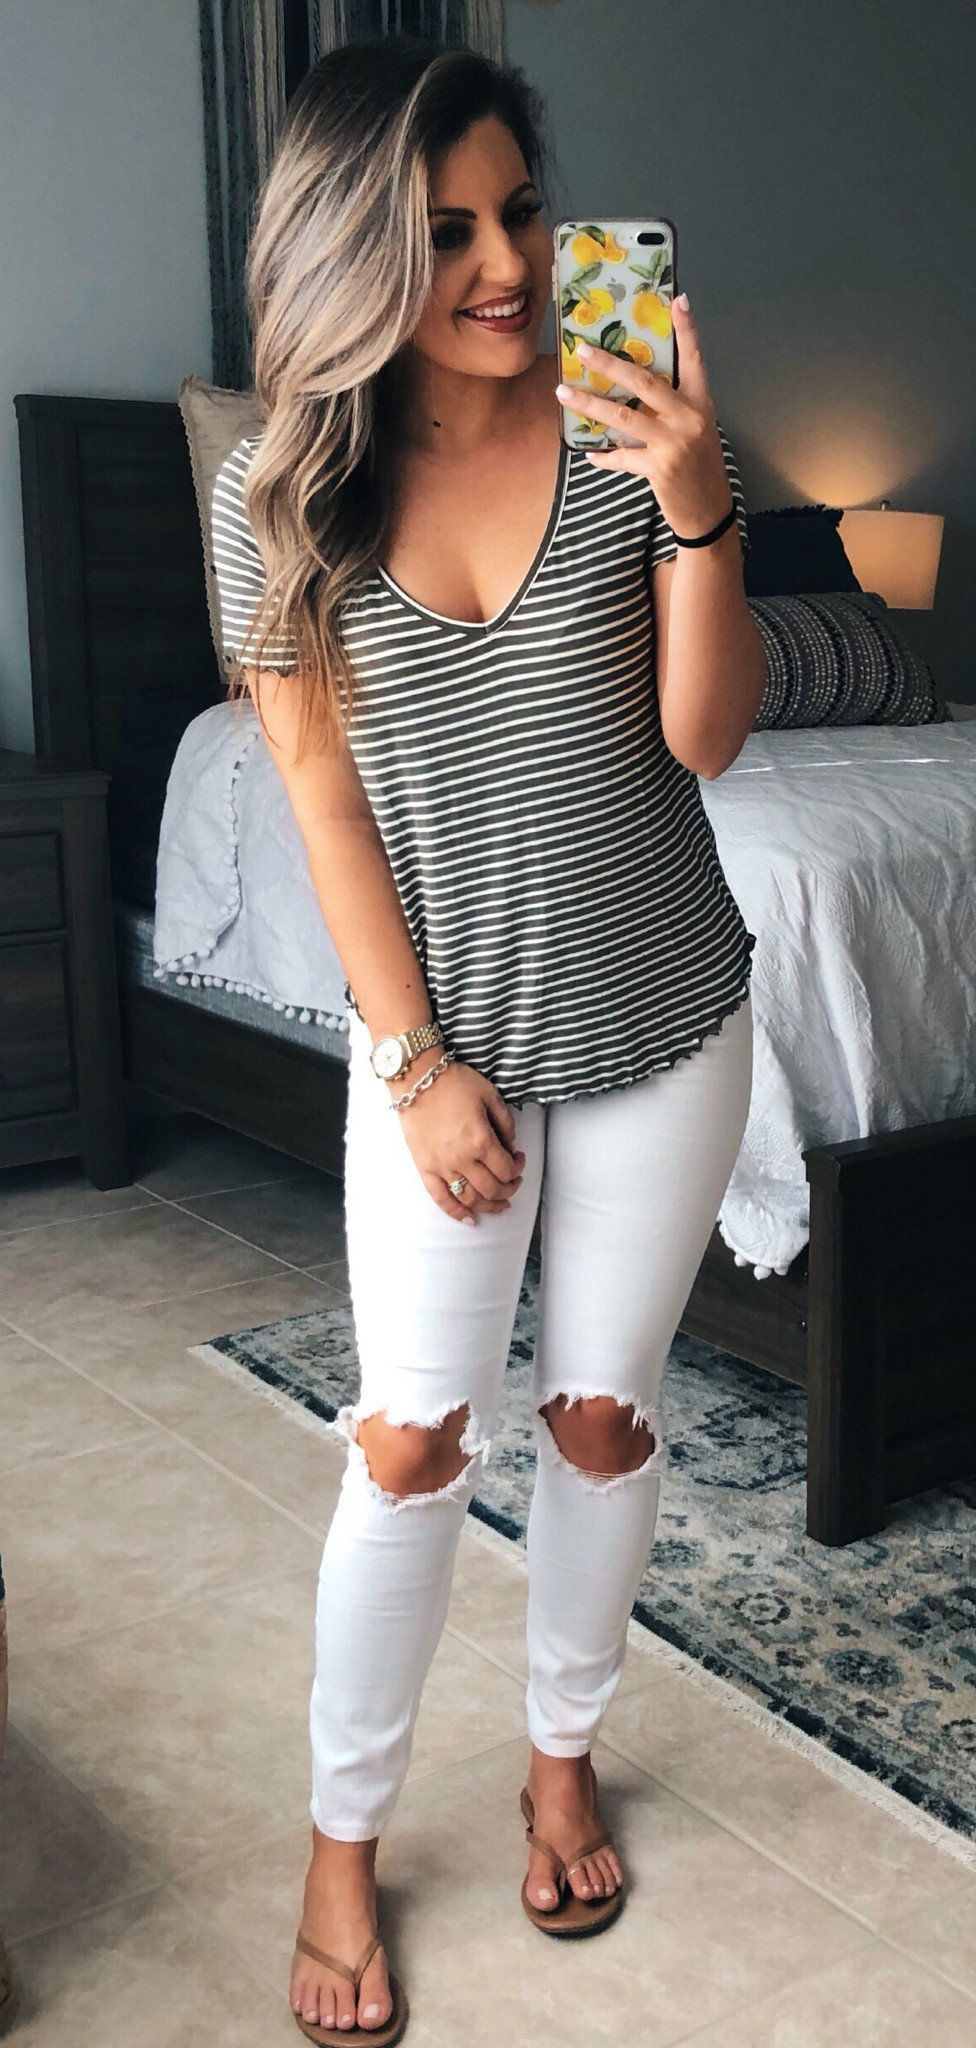 blcak and white striped blouse #spring #outfits